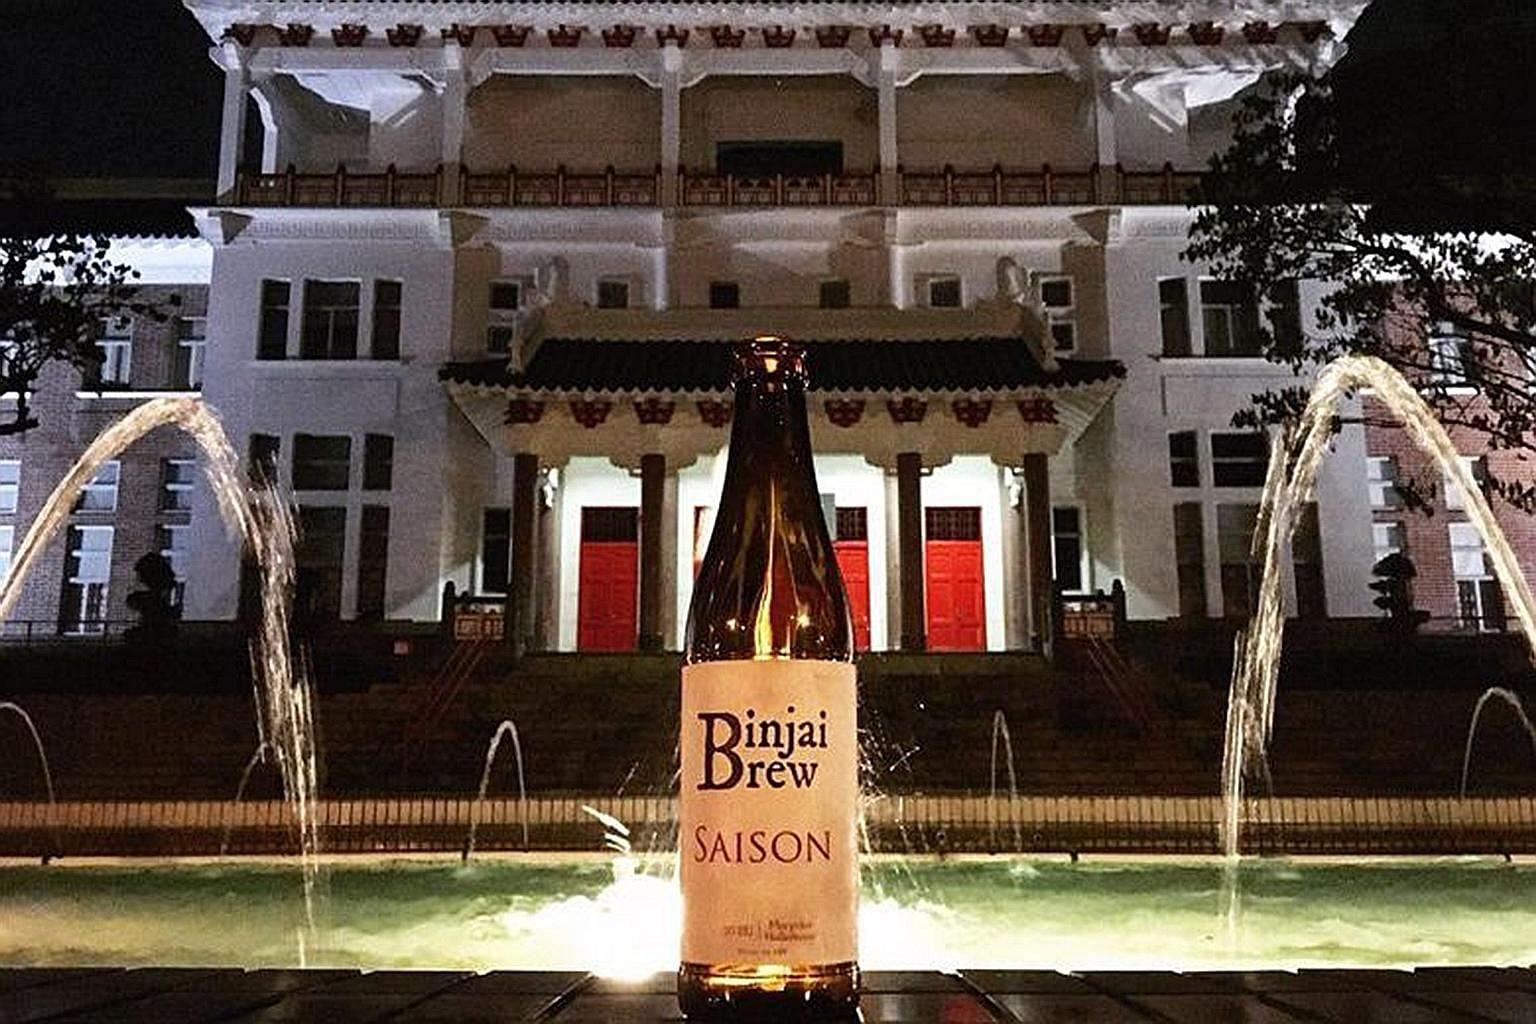 """NTU student Rahul Immandira yesterday said he and his two friends, all fourth-year students, began brewing beer at their residence hall in September last year, adding: """"We got notice from NTU to stop in February."""""""